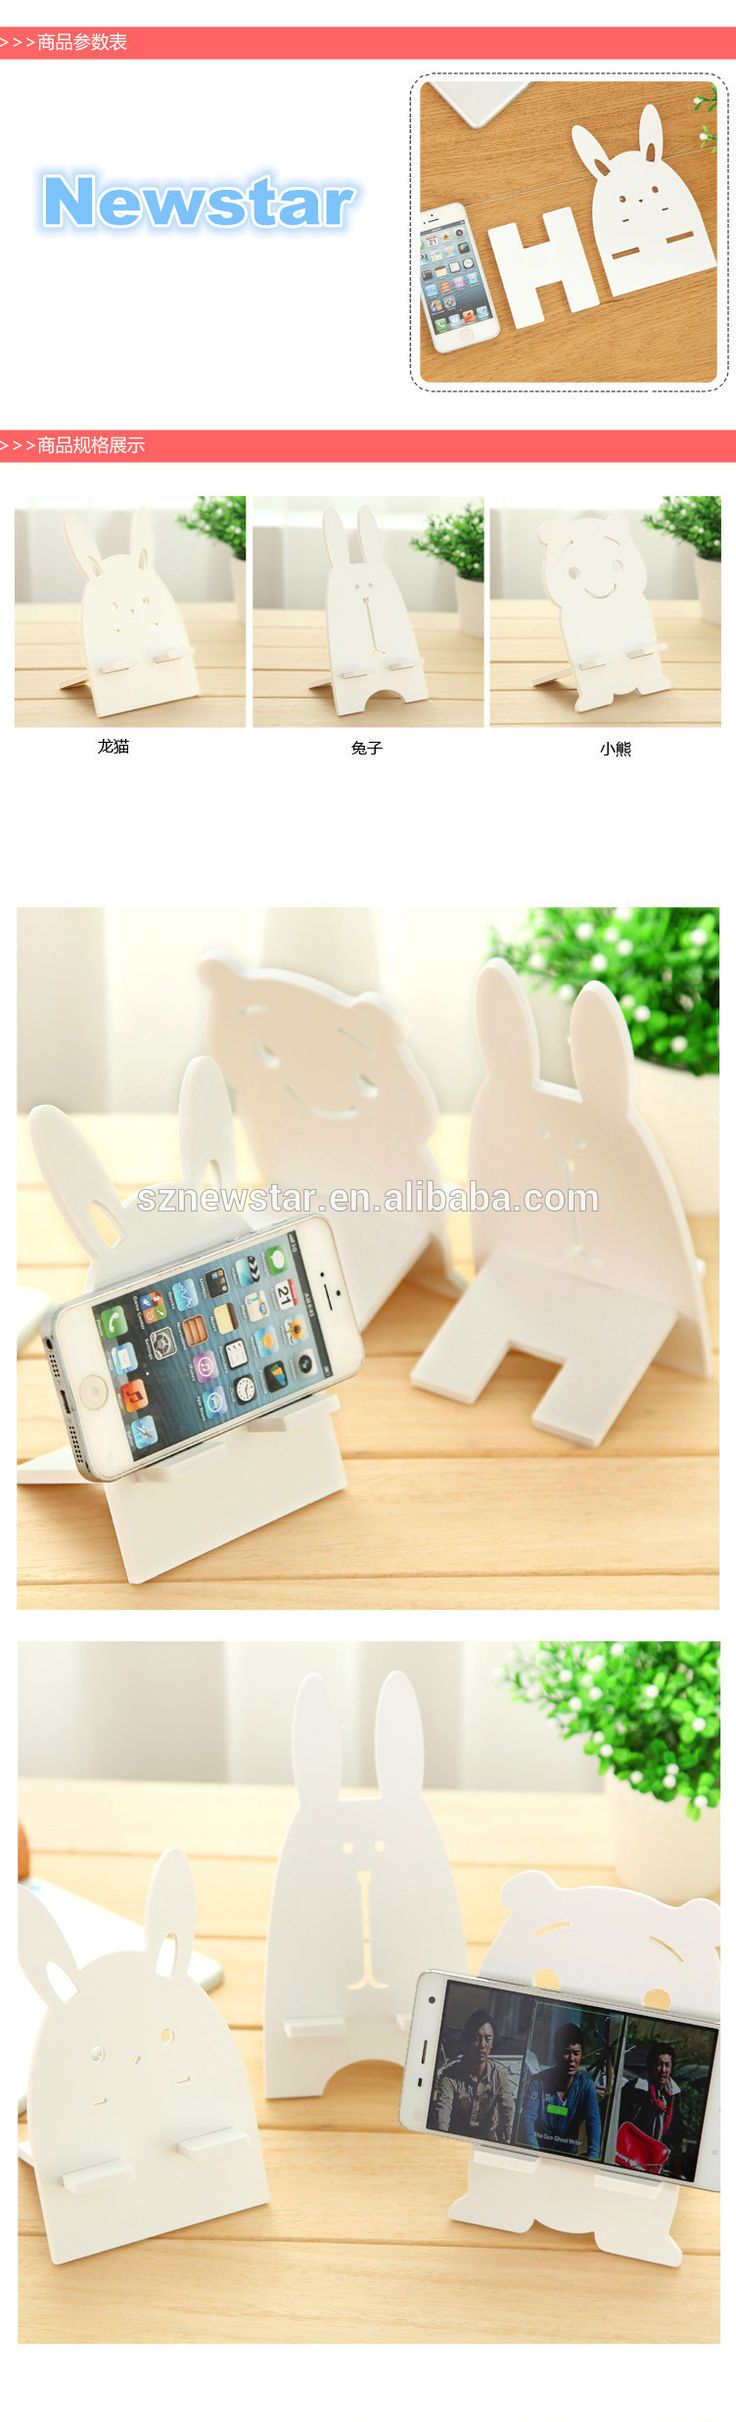 Cute Rabbit Cell Phone Clip Mount Desk Stand Holder for Smartphone white